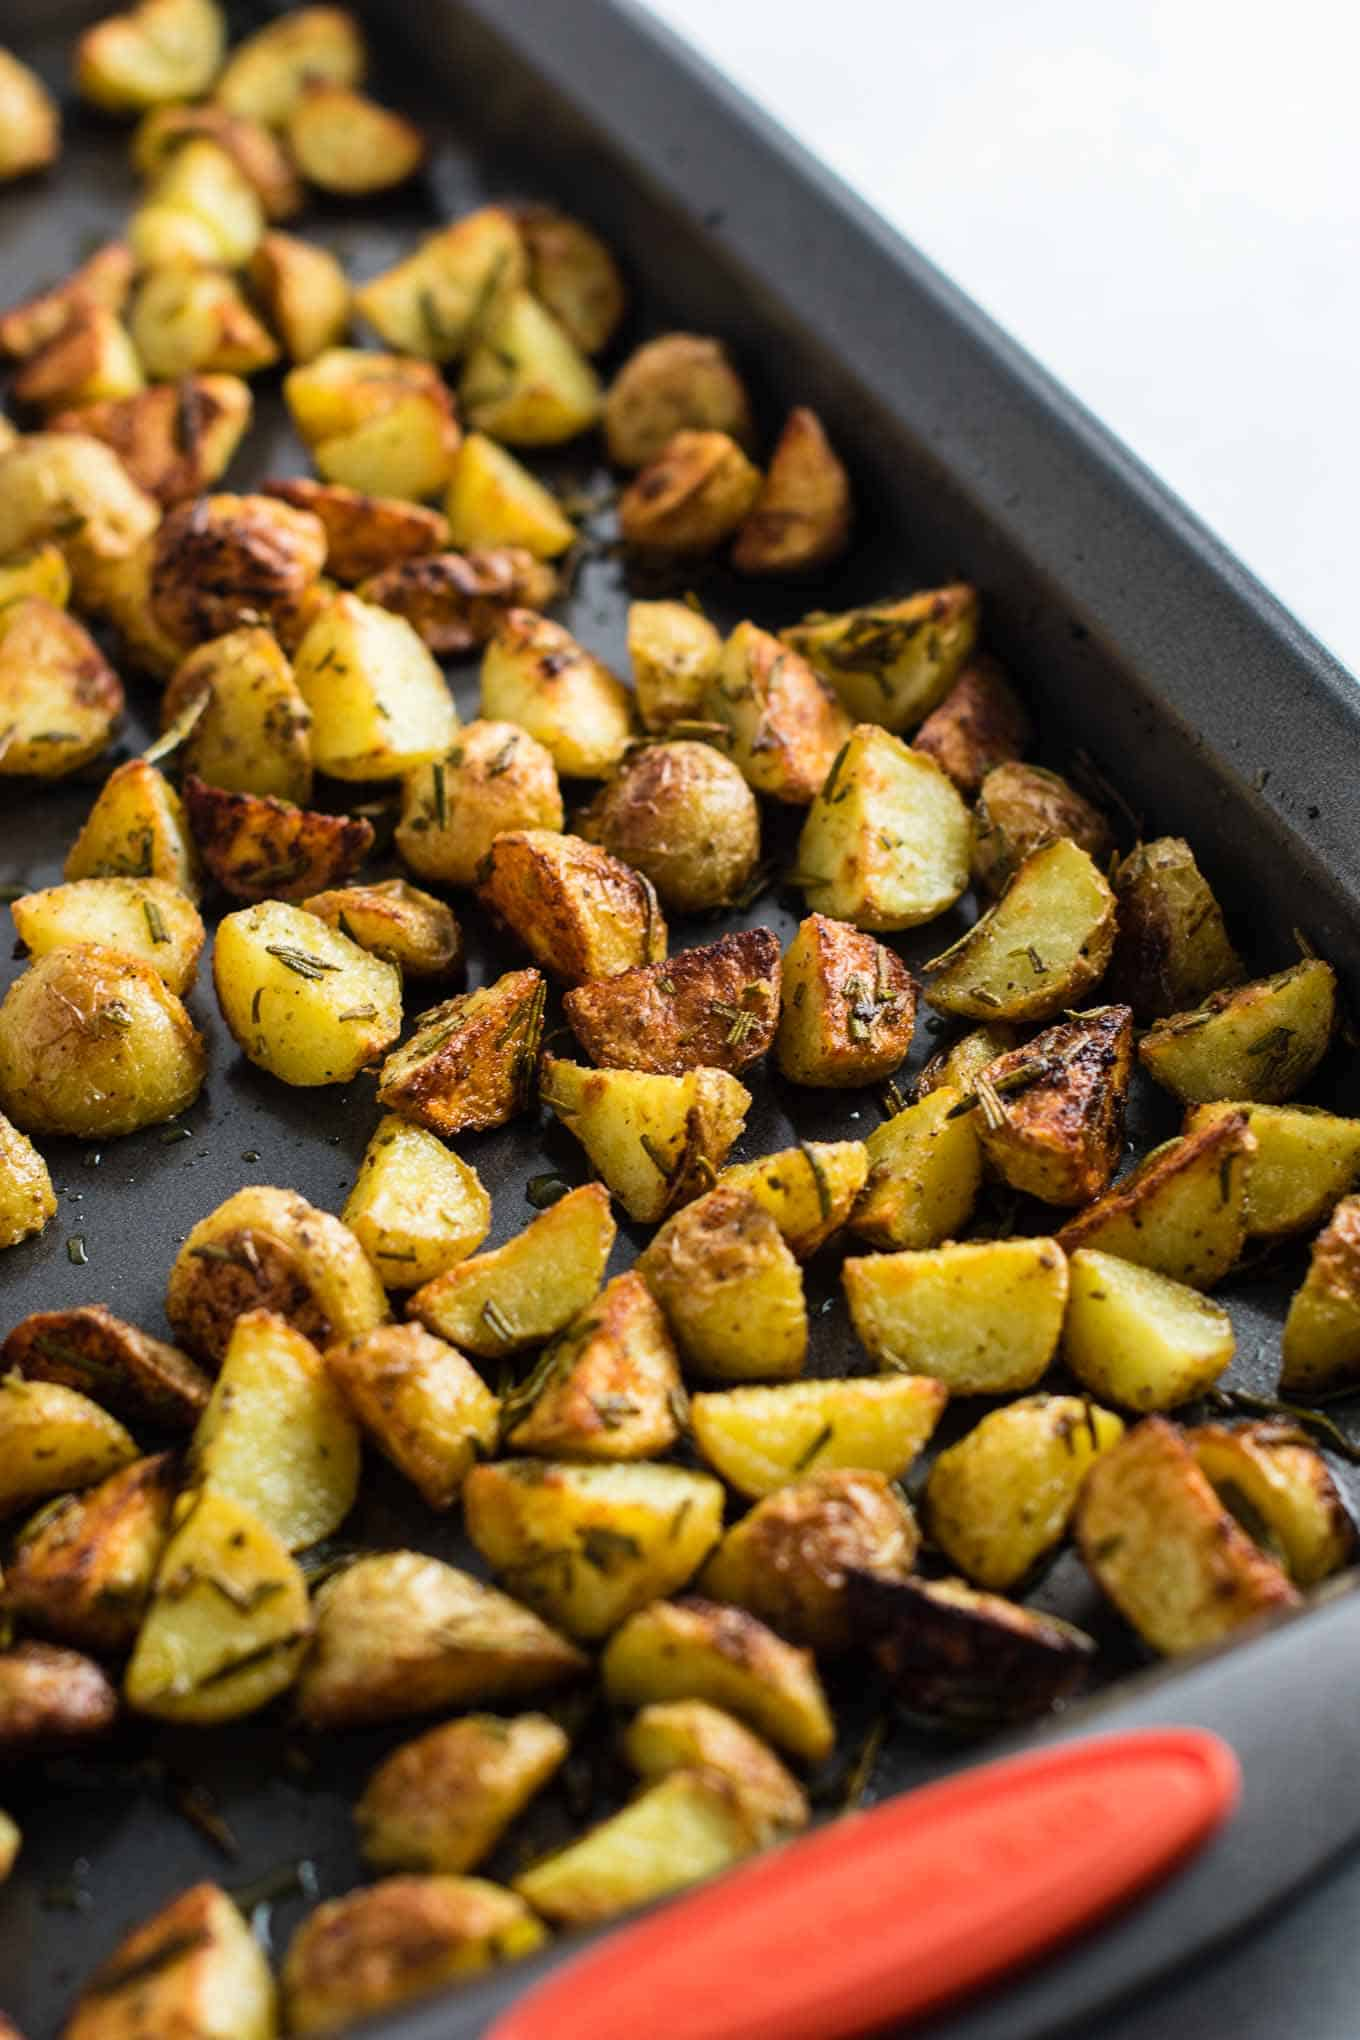 Rosemary roasted potatoes recipe made with fresh rosemary and olive oil. Everyone will love this easy side dish! #rosemaryroastedpotatoes #vegan #sidedish #roastedpotatoes